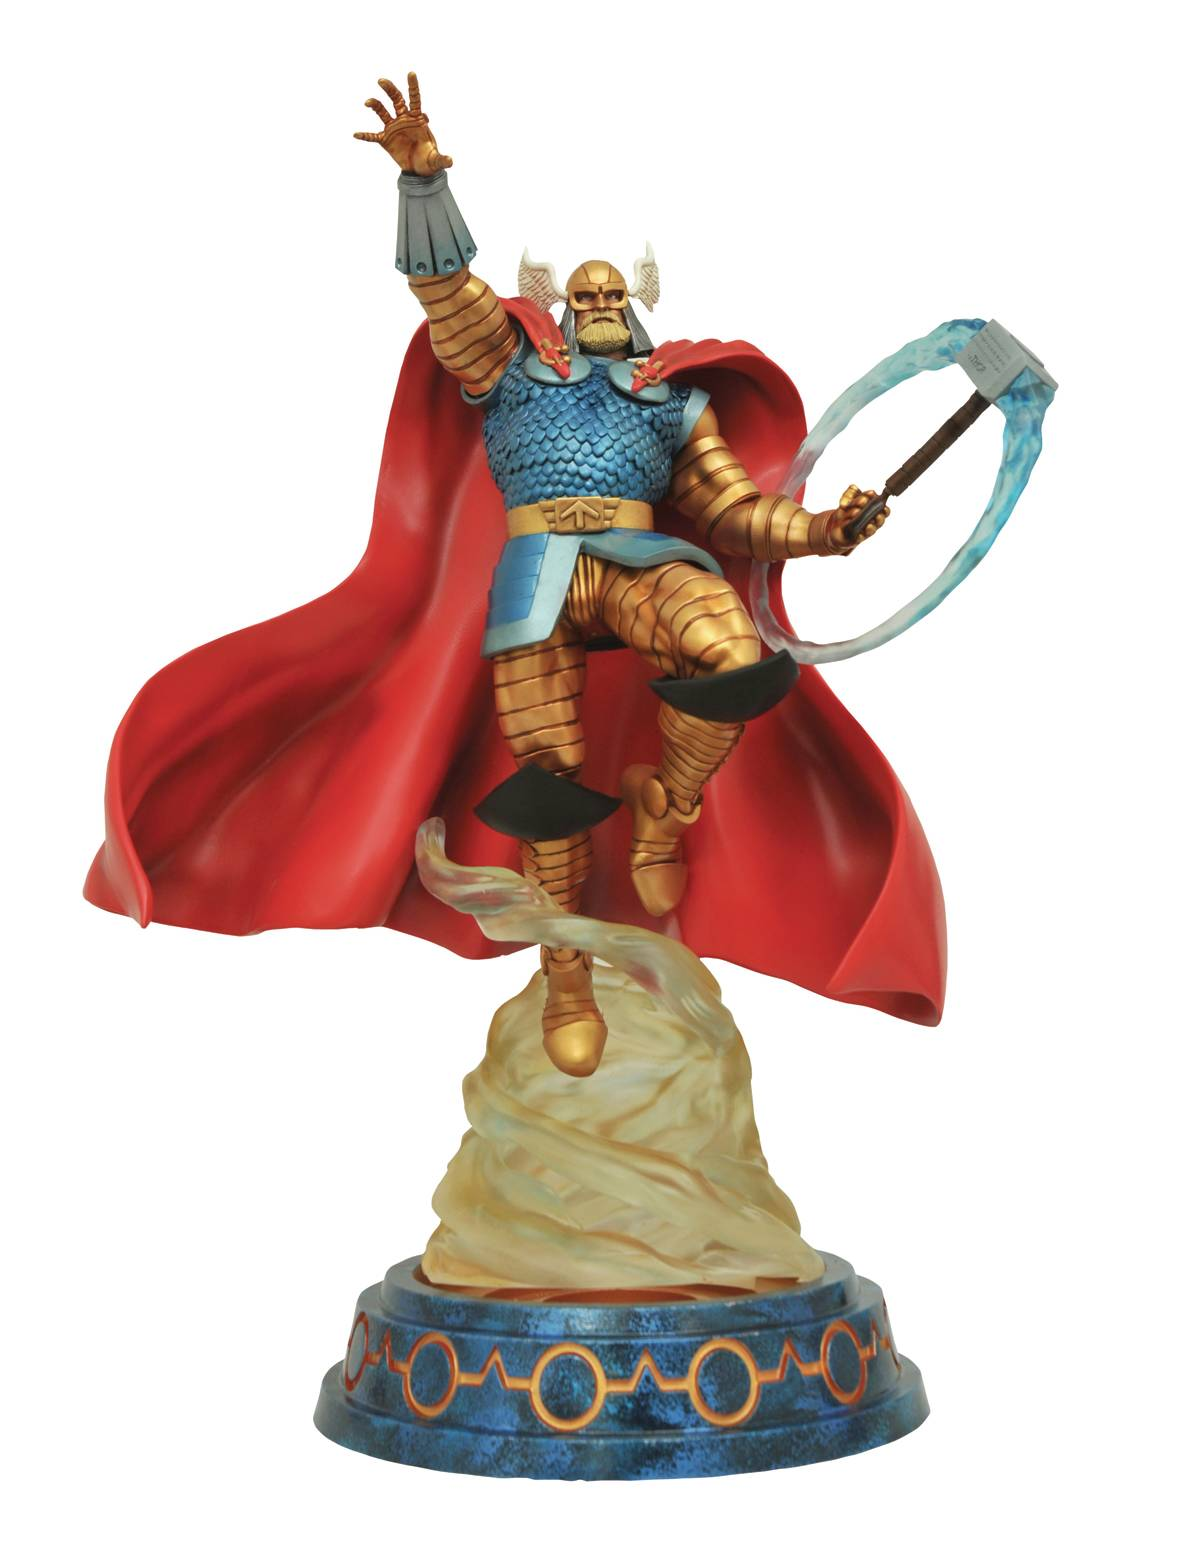 Diamond Marvel Milestones Armored Thor Statue